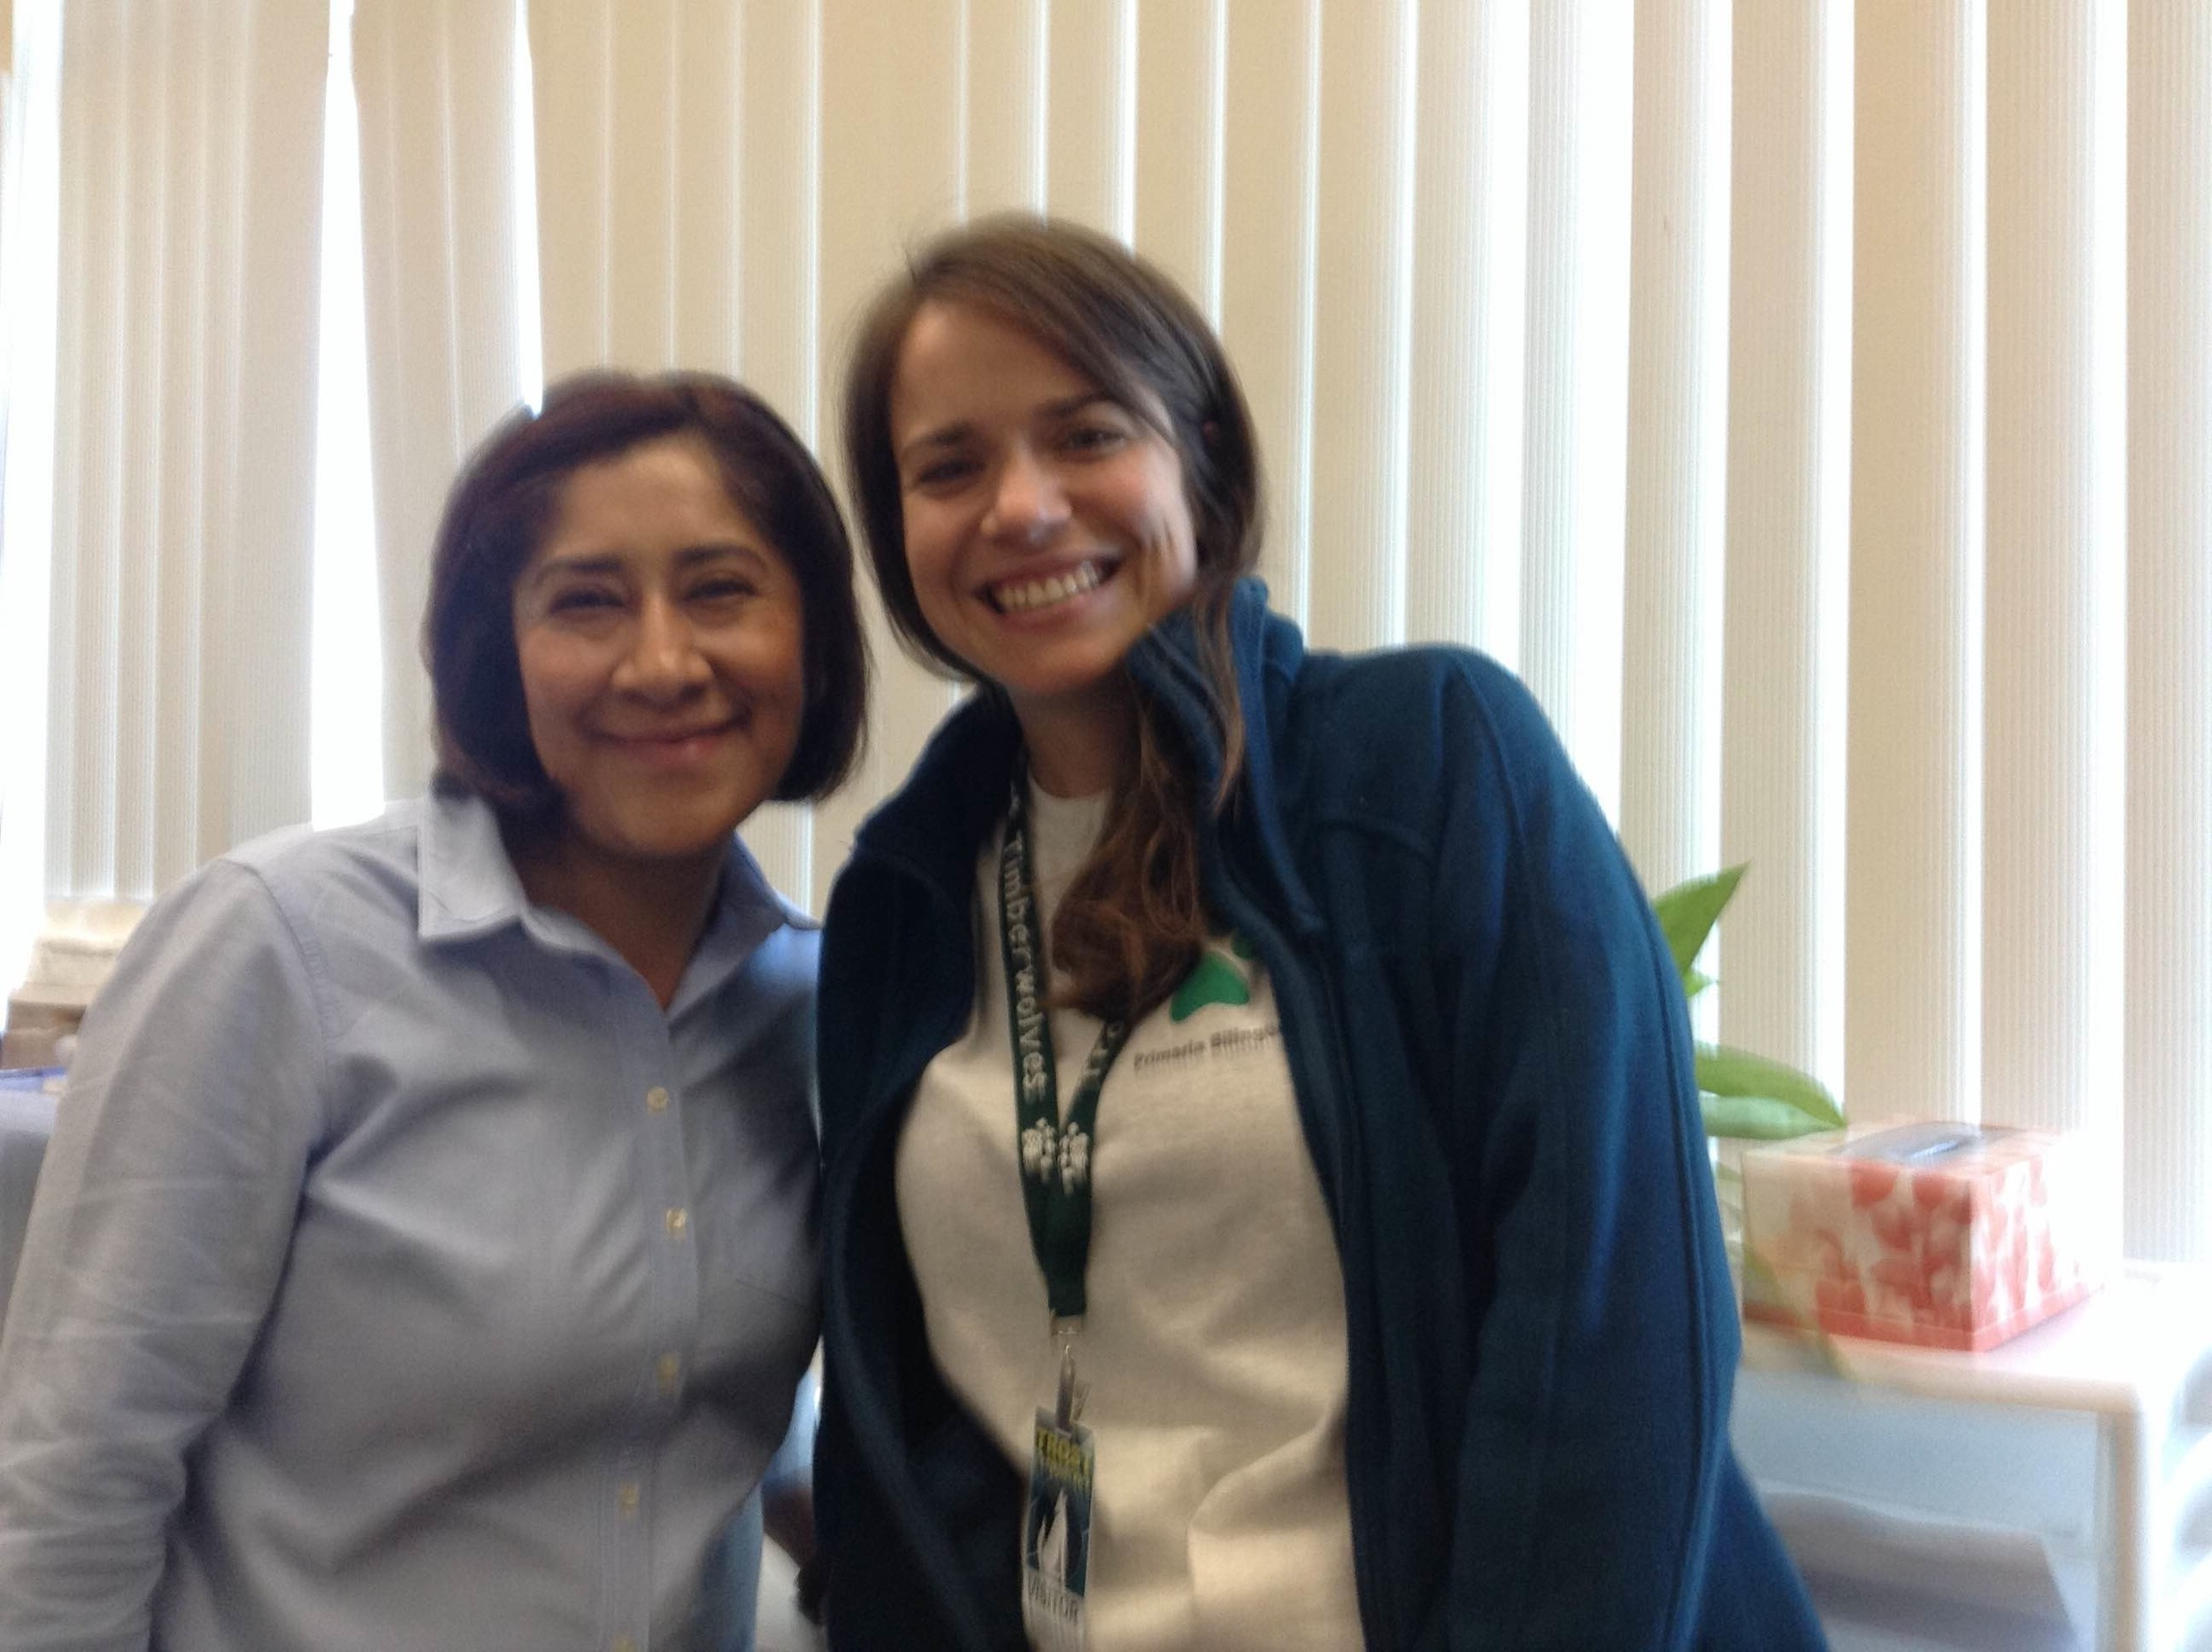 At Trost Elementary in Canby, Oregon, Elsie gets to work with master teacher, Victoria Aguilar. Together they teach 60 fifth graders in both Spanish and English, focusing in particular on math and literacy.